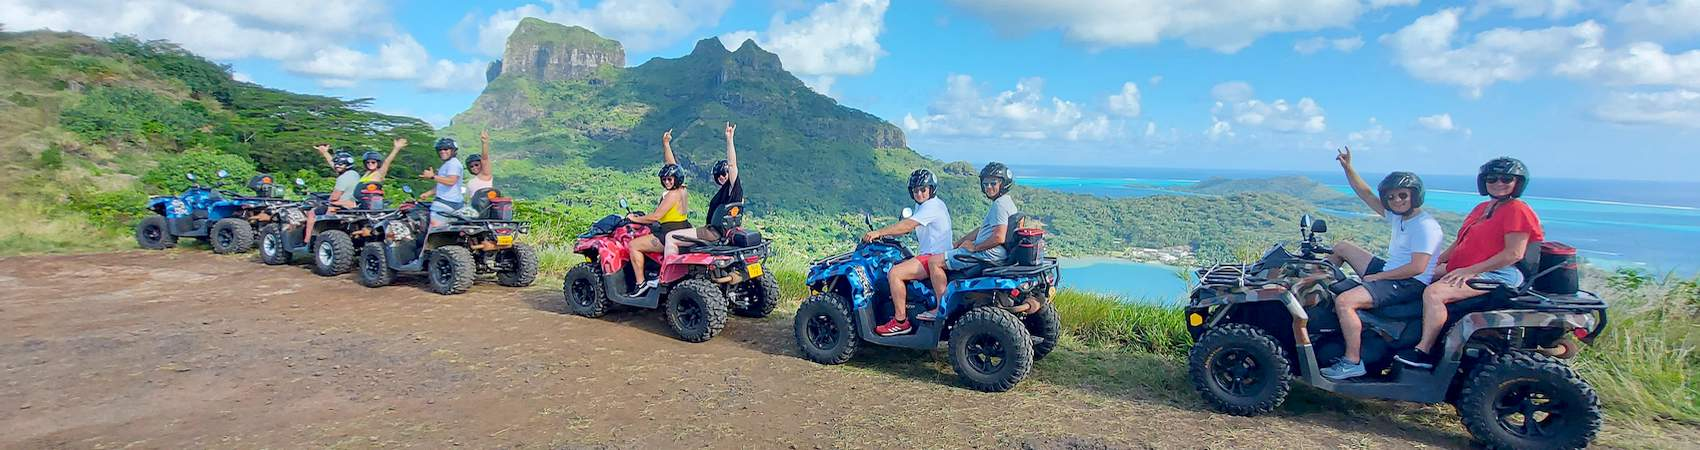 bora-bora-atv-tours